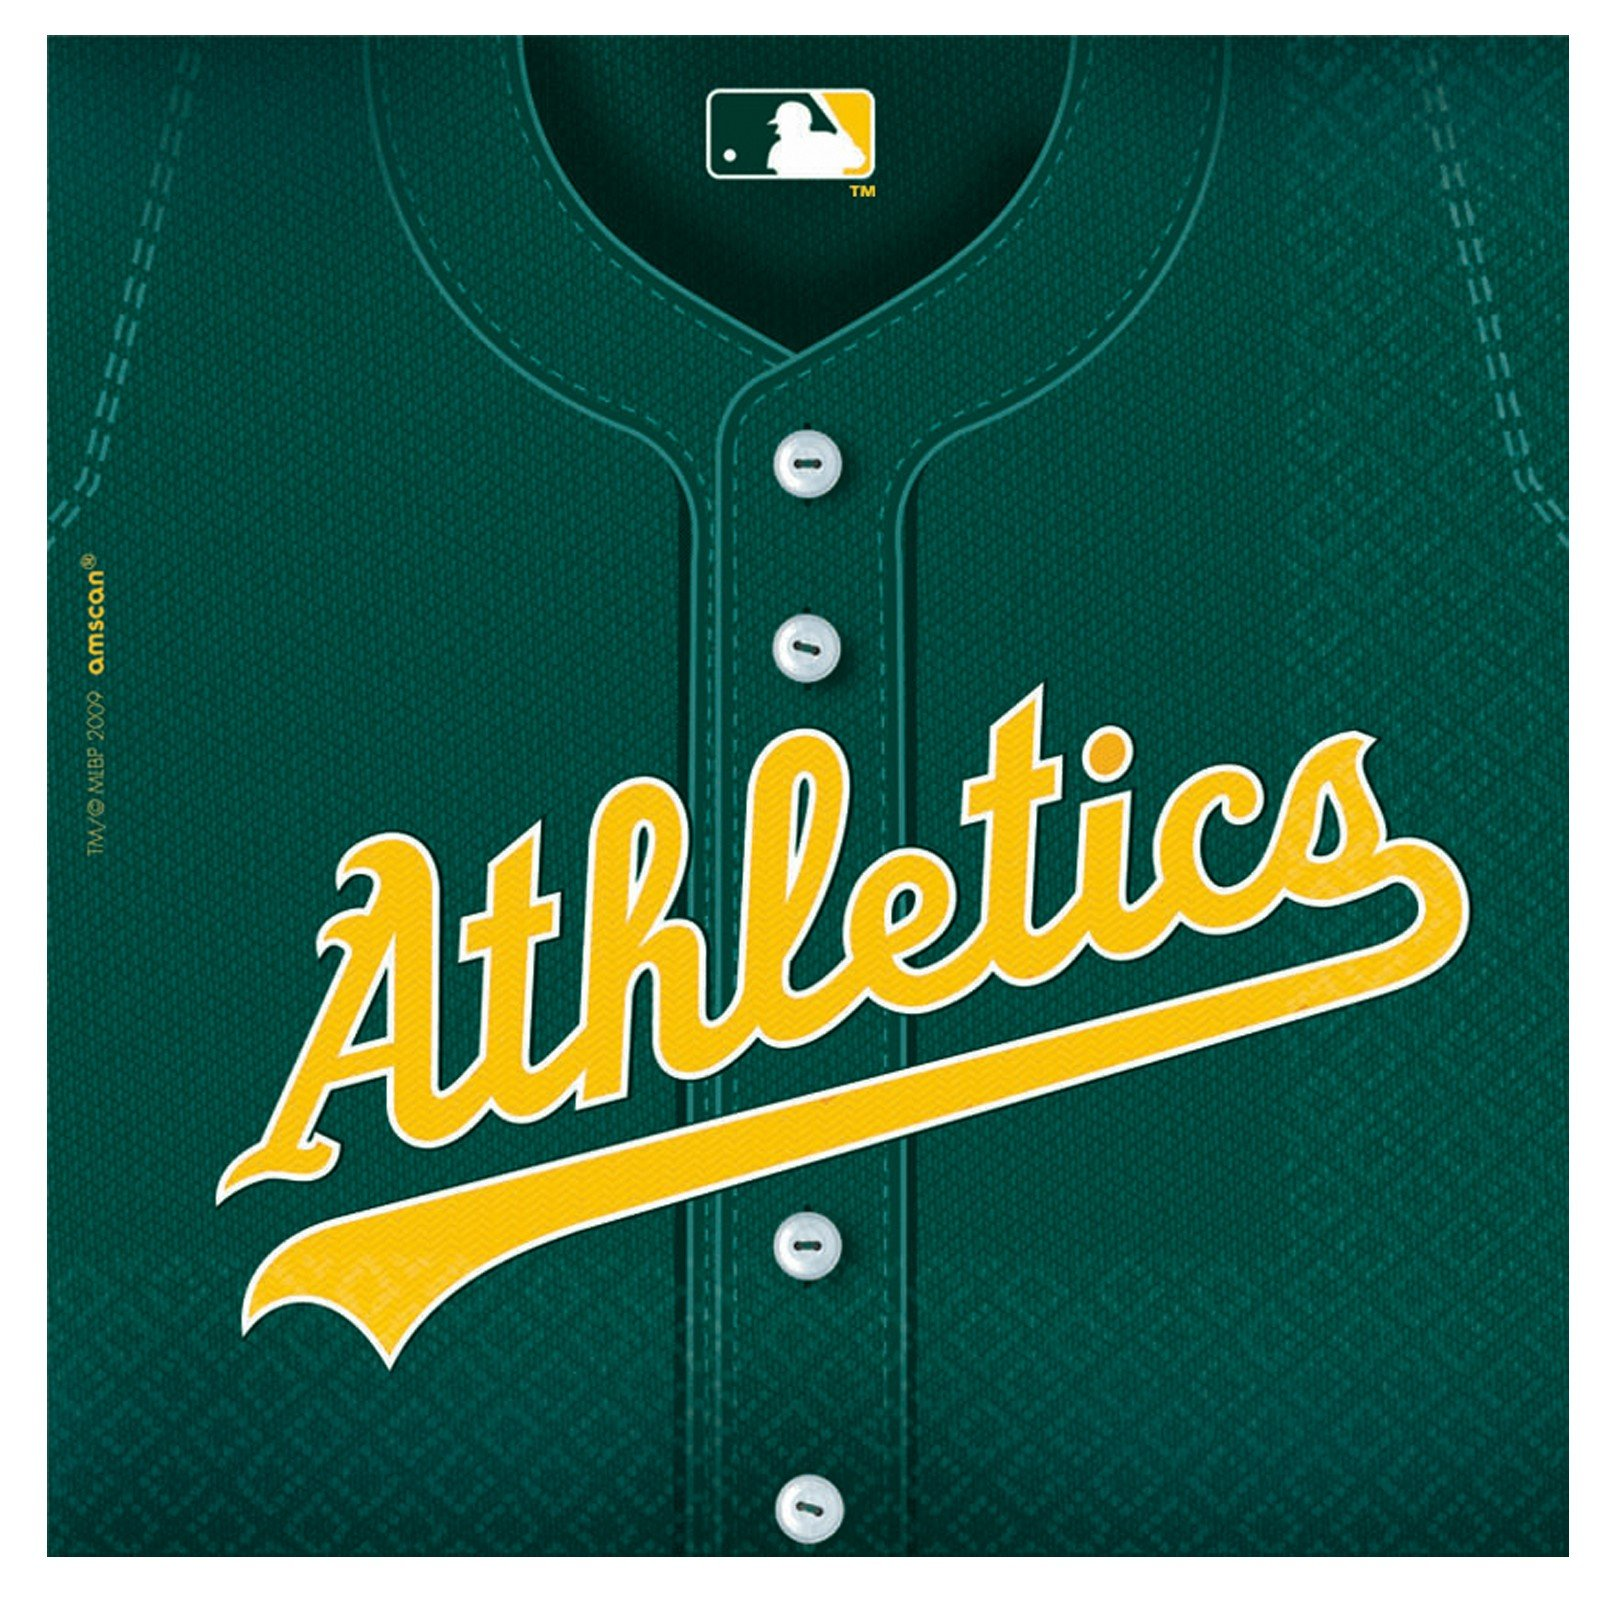 OAKLAND ATHLETICS mlb baseball 90 wallpaper 1600x1600 319158 1600x1600